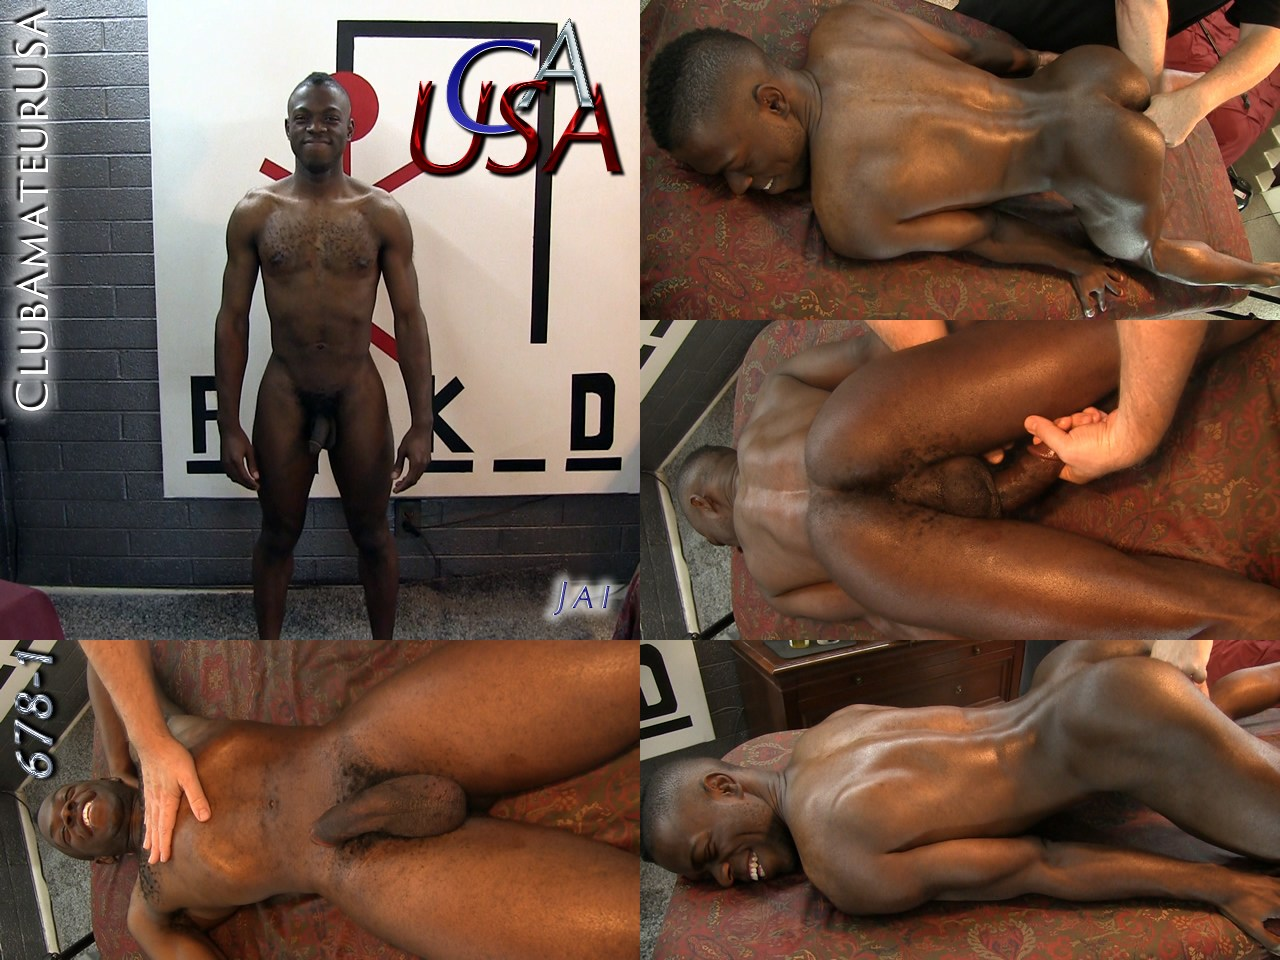 Download or Stream CAUSA 678 Jai - 1 of 2 - Click Here Now